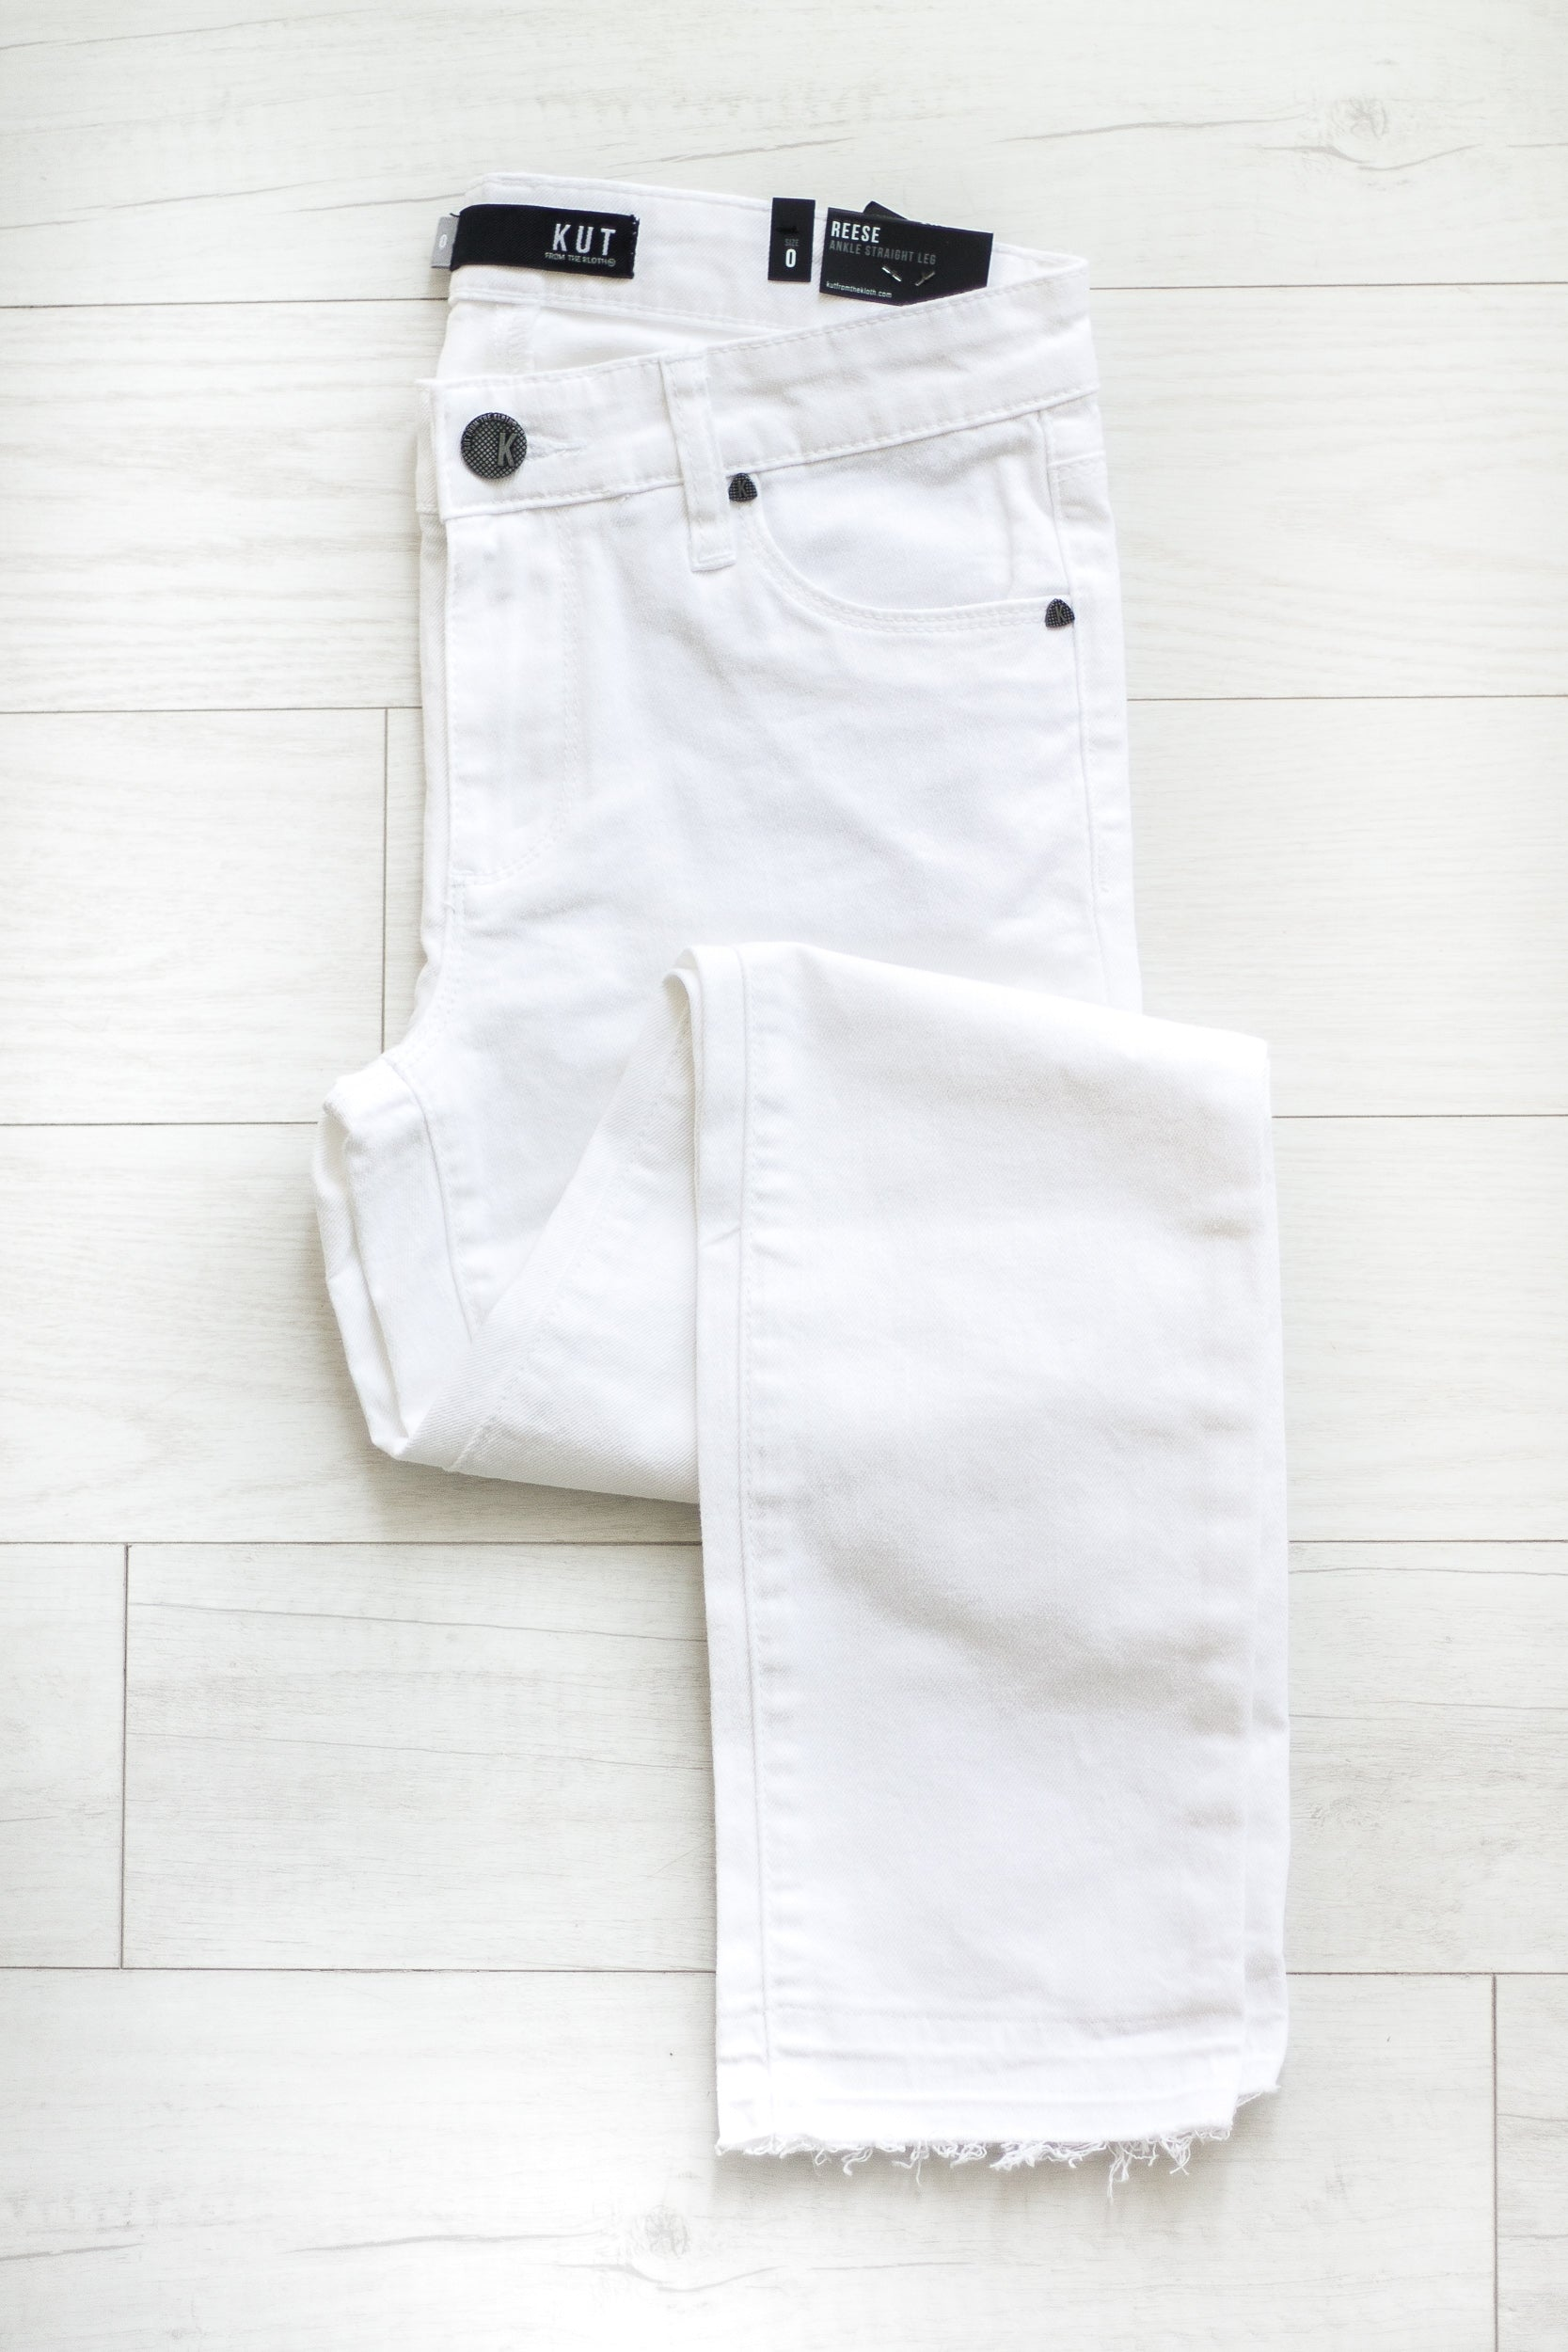 KUT Optic White Reese Straight Leg